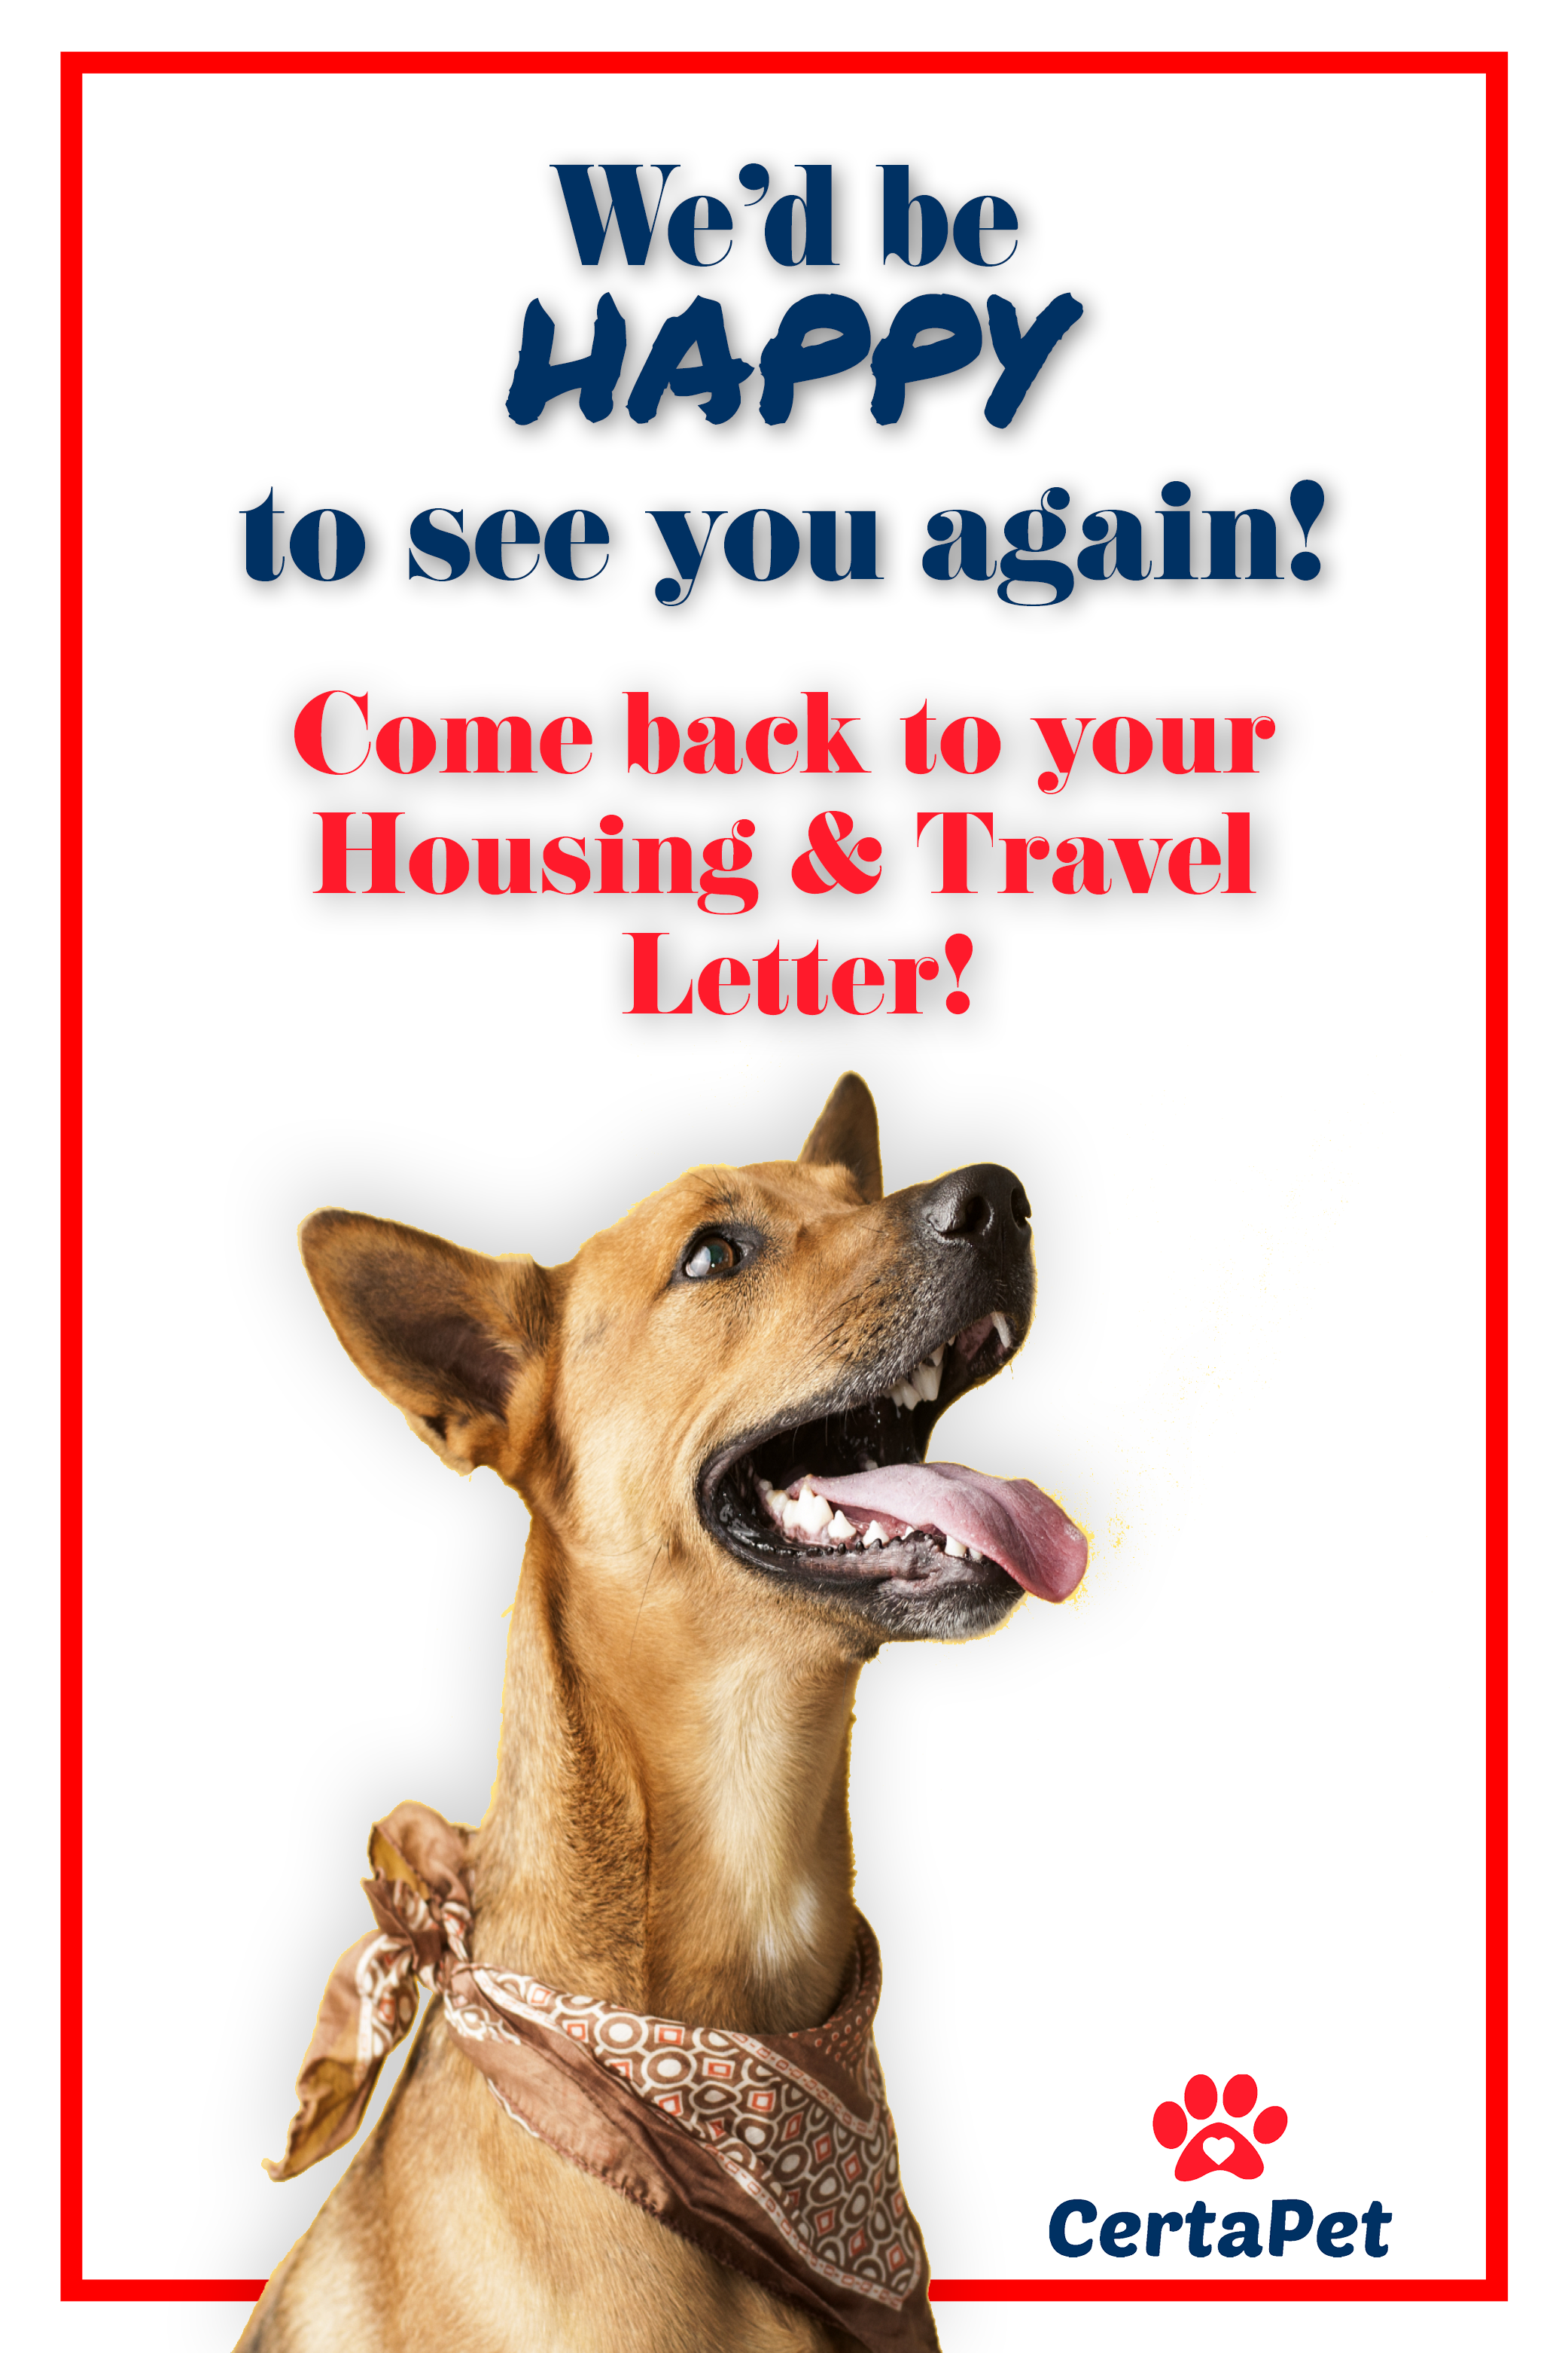 Hey There! Your Housing and Travel ESA Letter is waiting